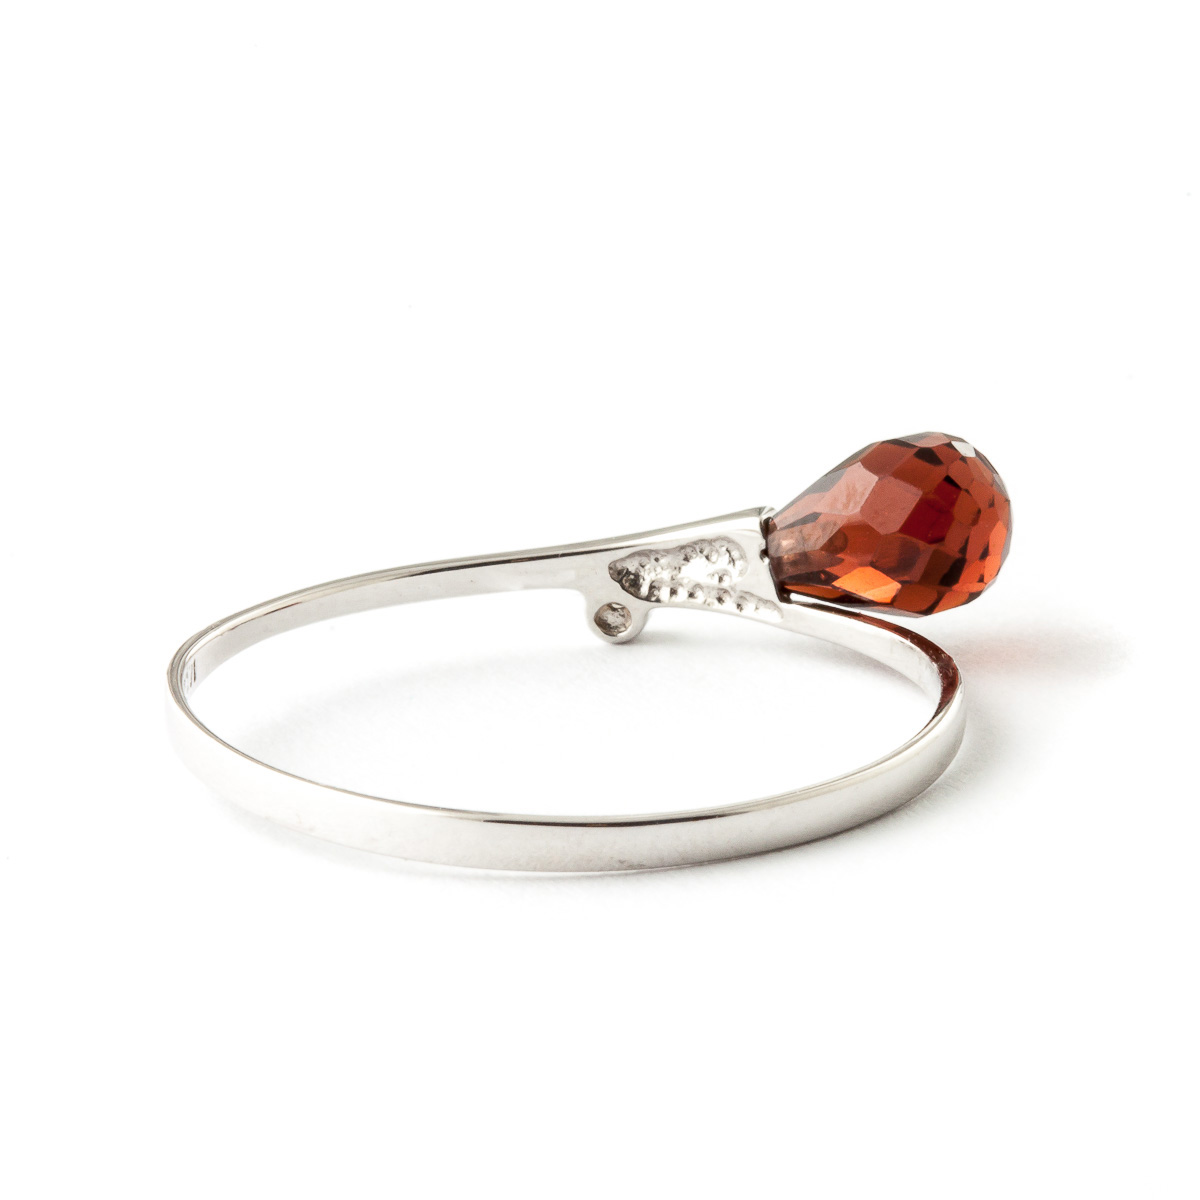 Garnet and Diamond Droplet Ring 1.5ct in 9ct White Gold